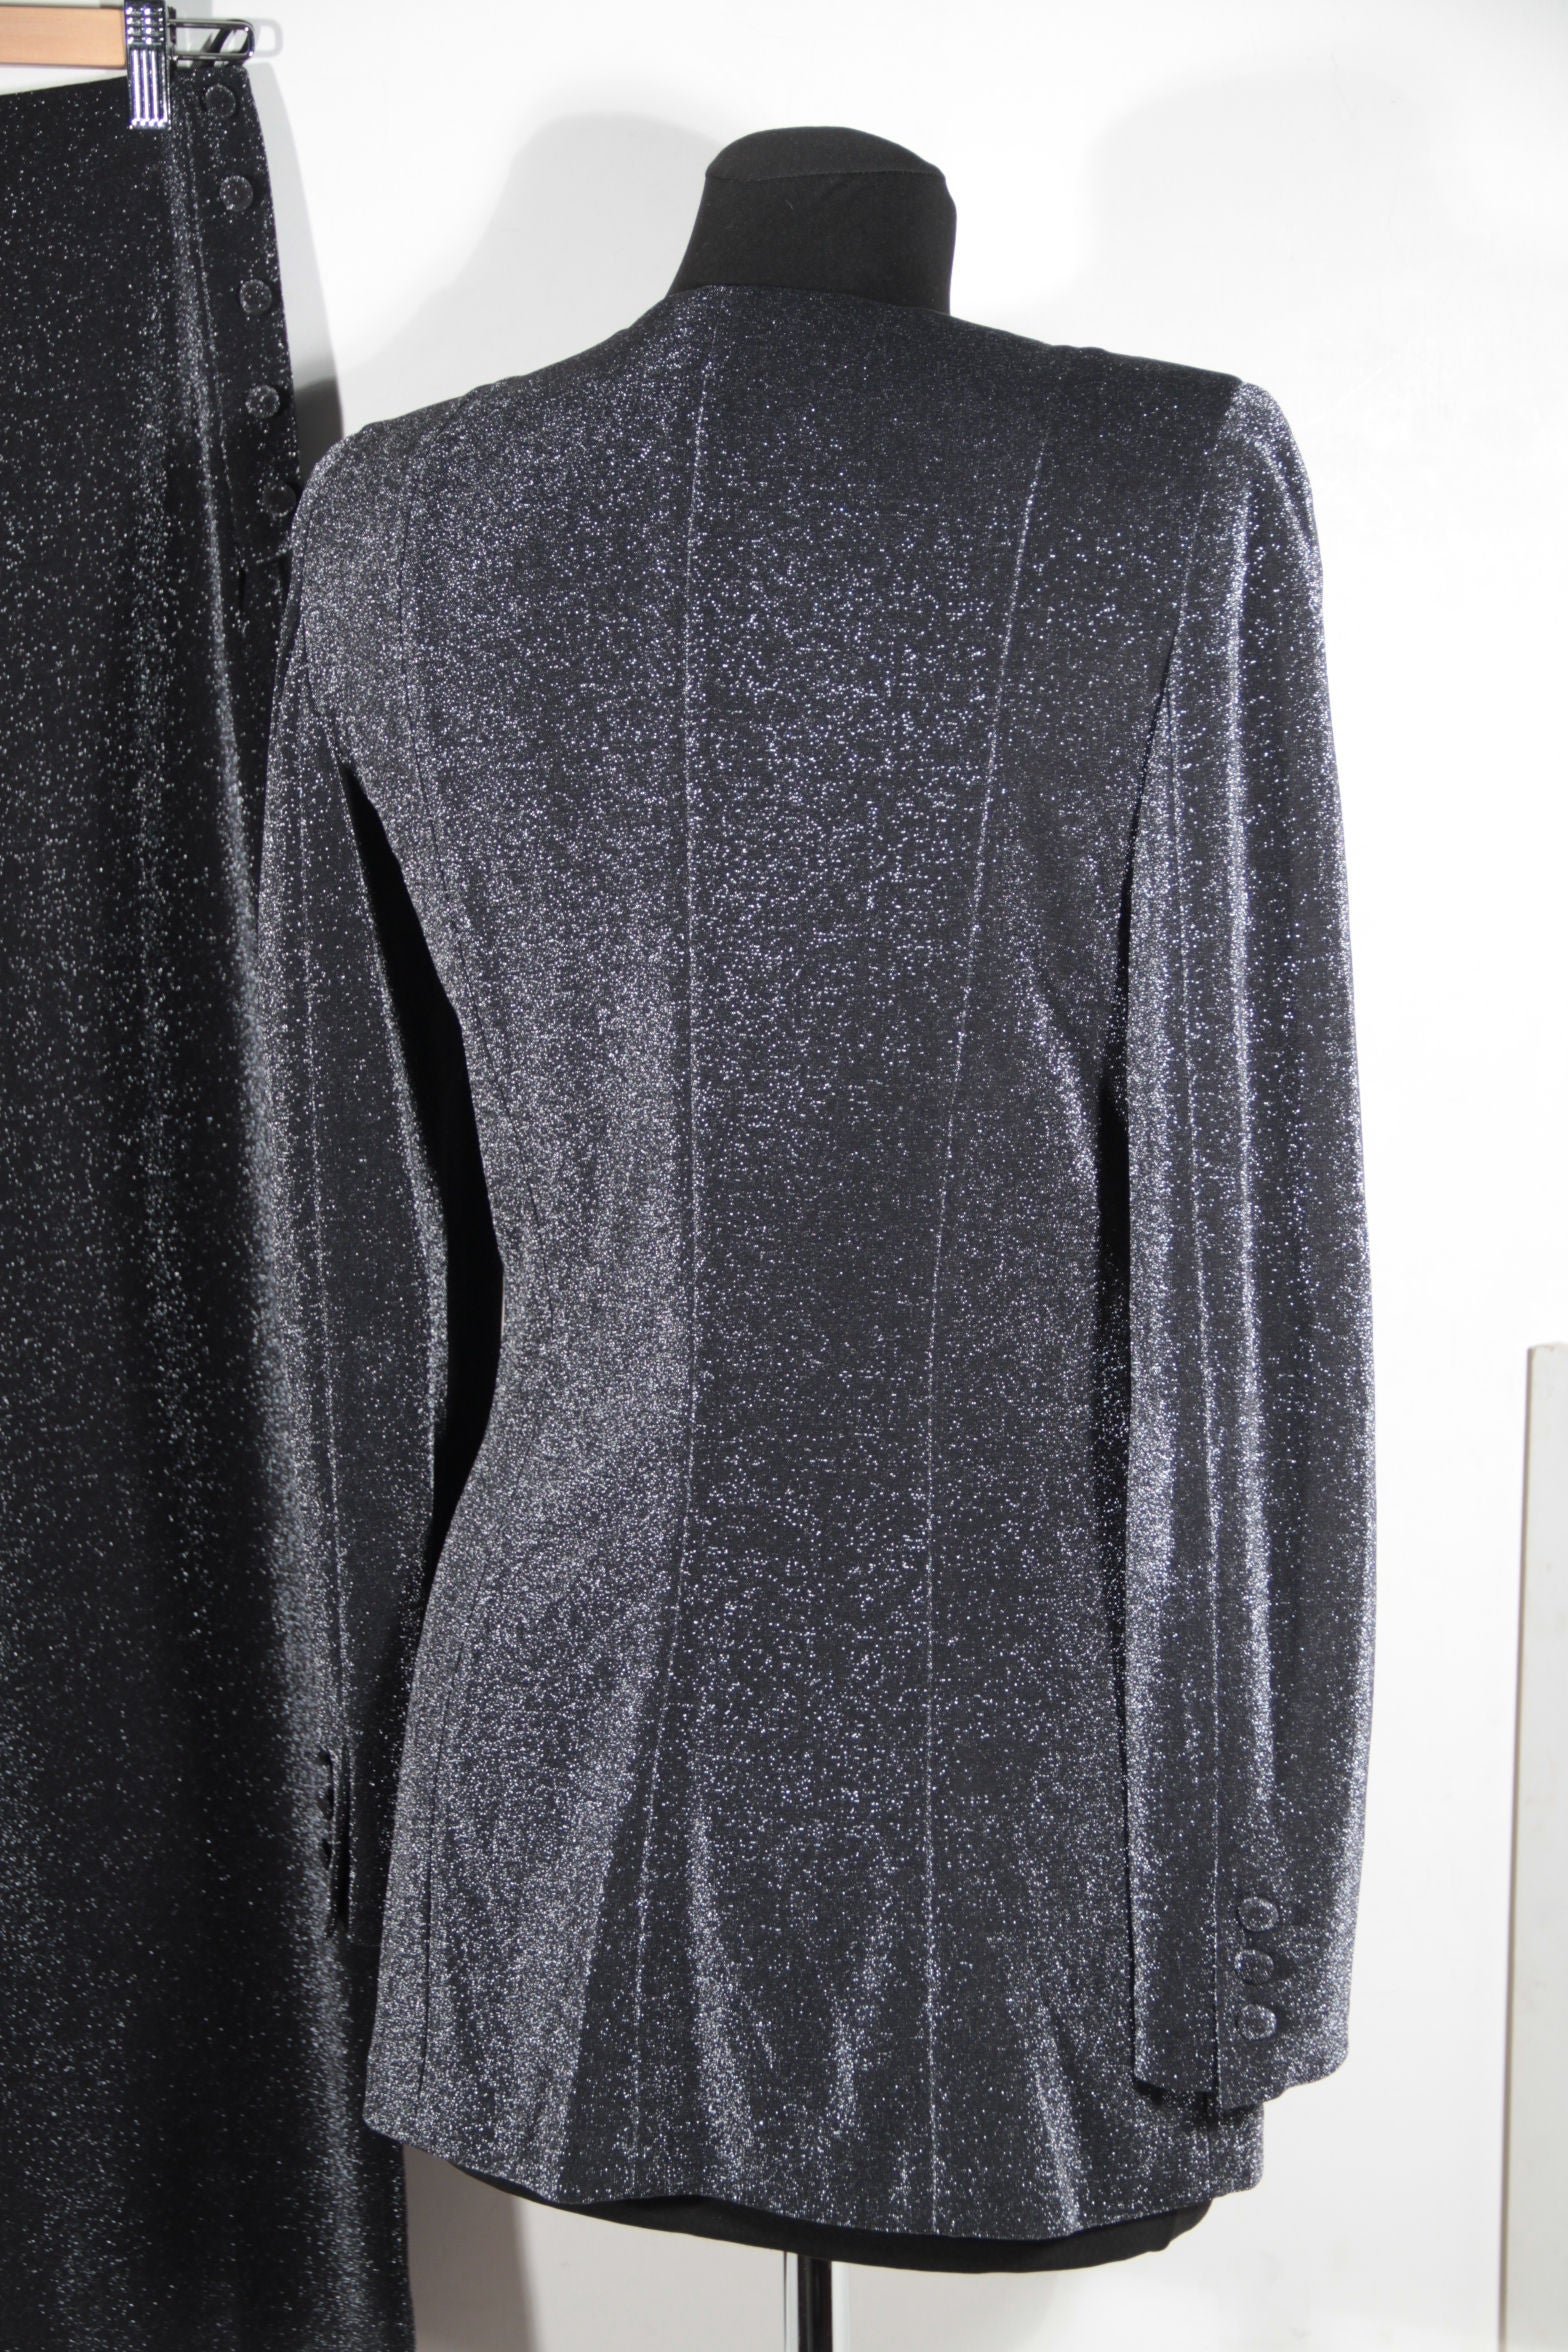 f162c2c41b42c GIORGIO ARMANI BLACK LABEL Lurex WOMEN SUIT Dress BLAZER and Wide Leg Pants  SMALL For Sale at 1stdibs